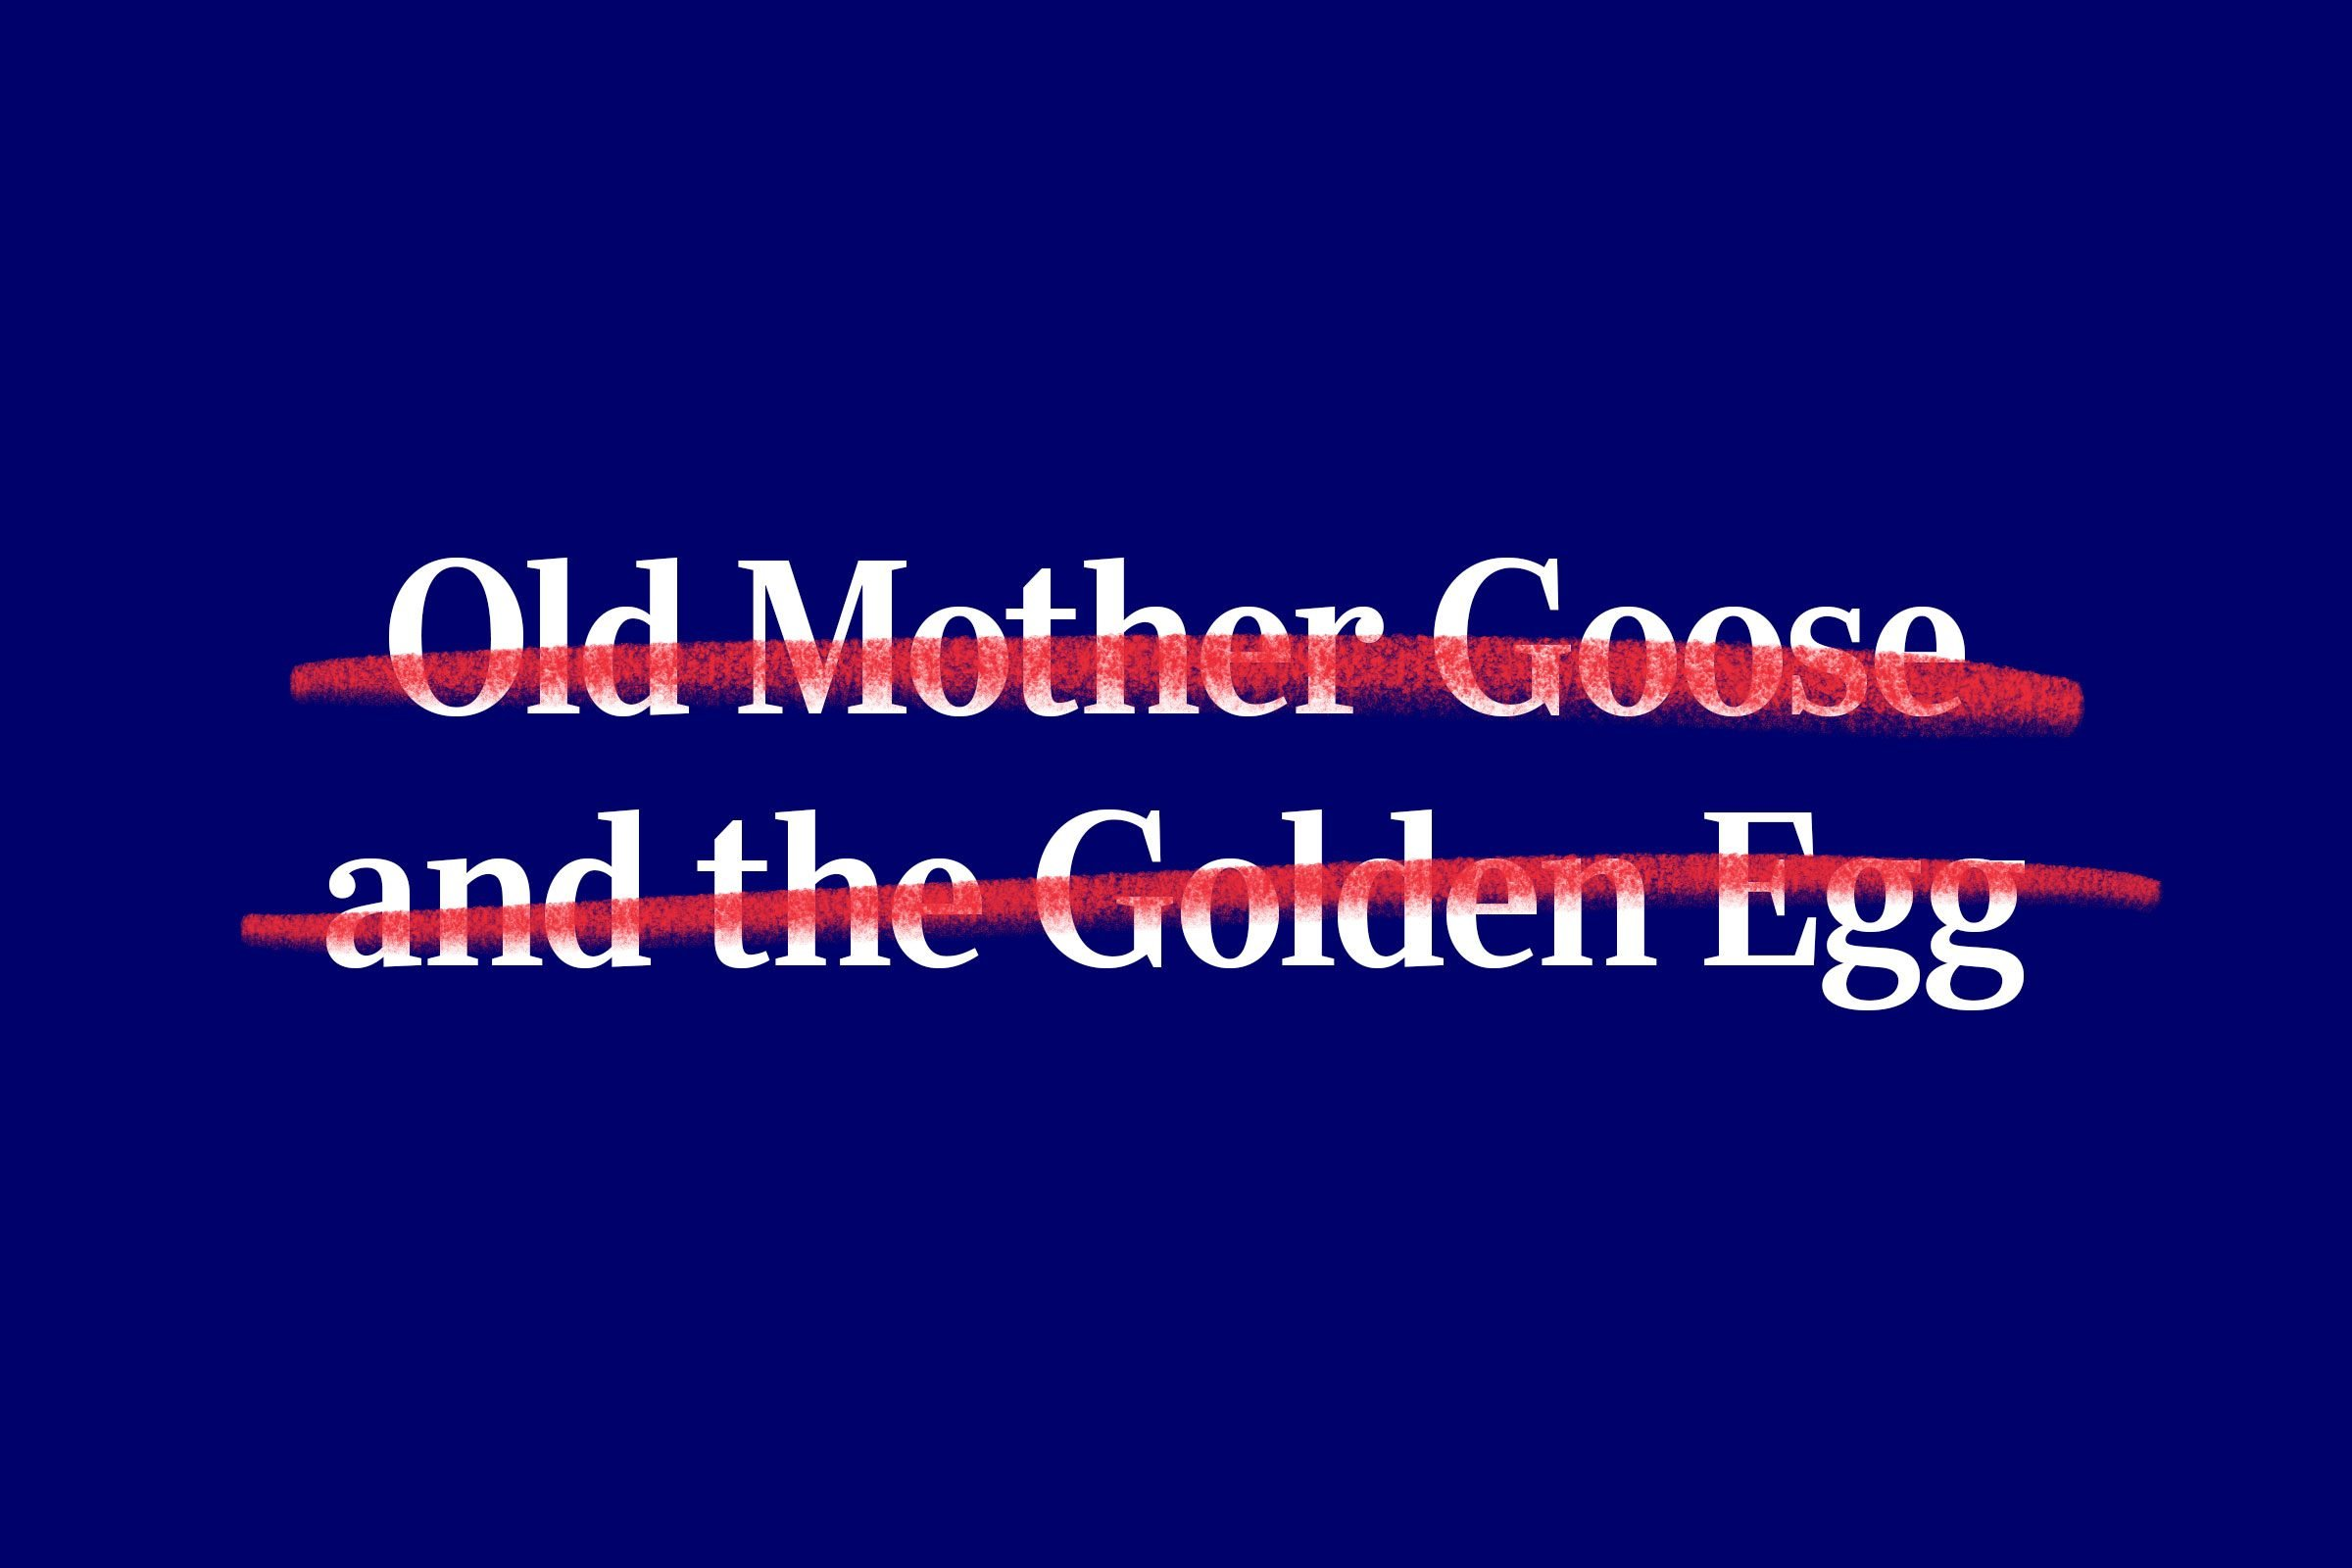 nursery rhyme title (Old Mother Goose and the Golden Egg) with red strikethrough overlay